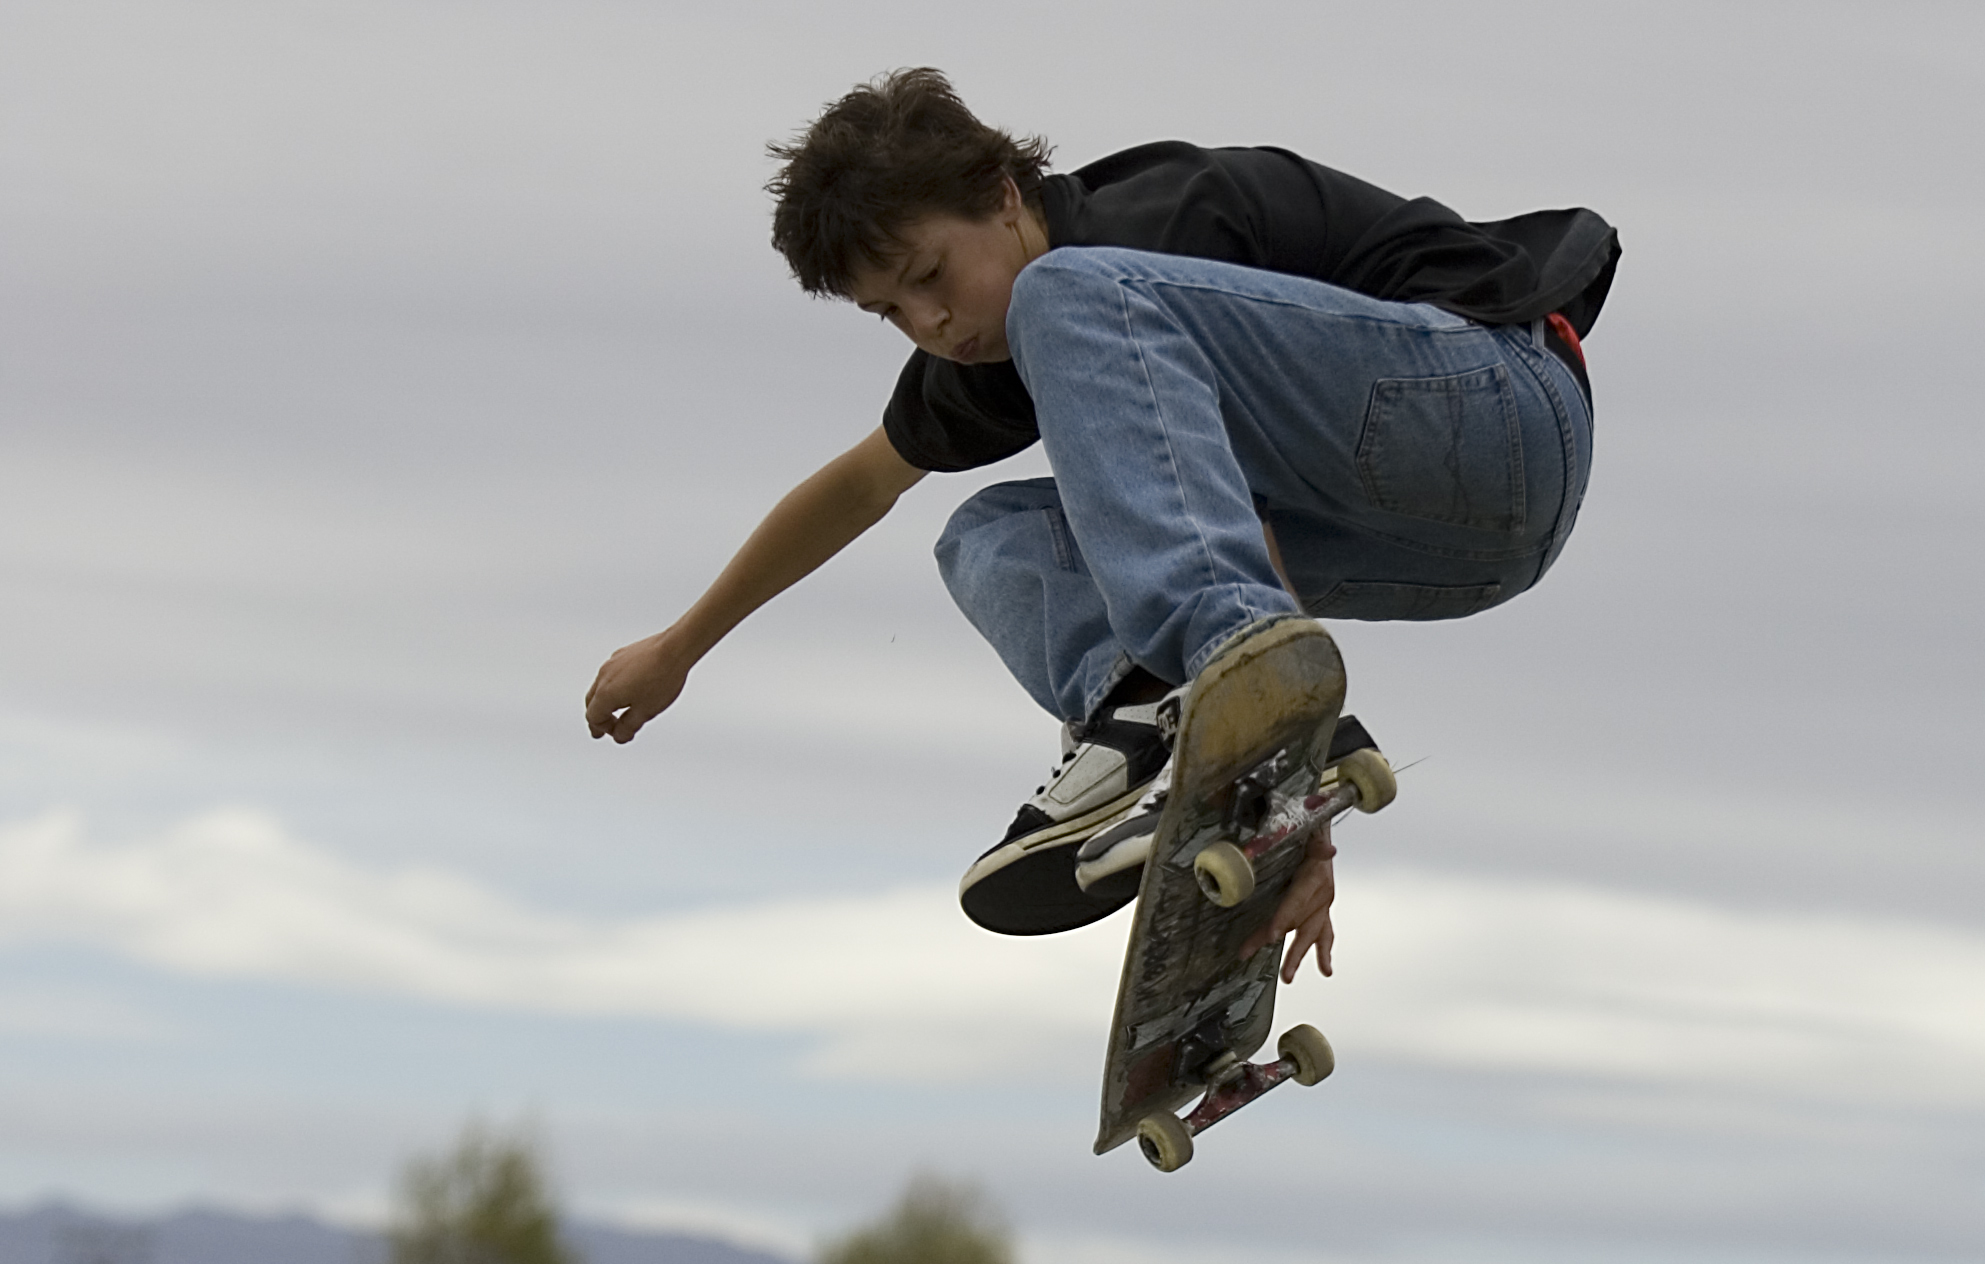 Sport Skateboarding skates skate HD Wallpaper